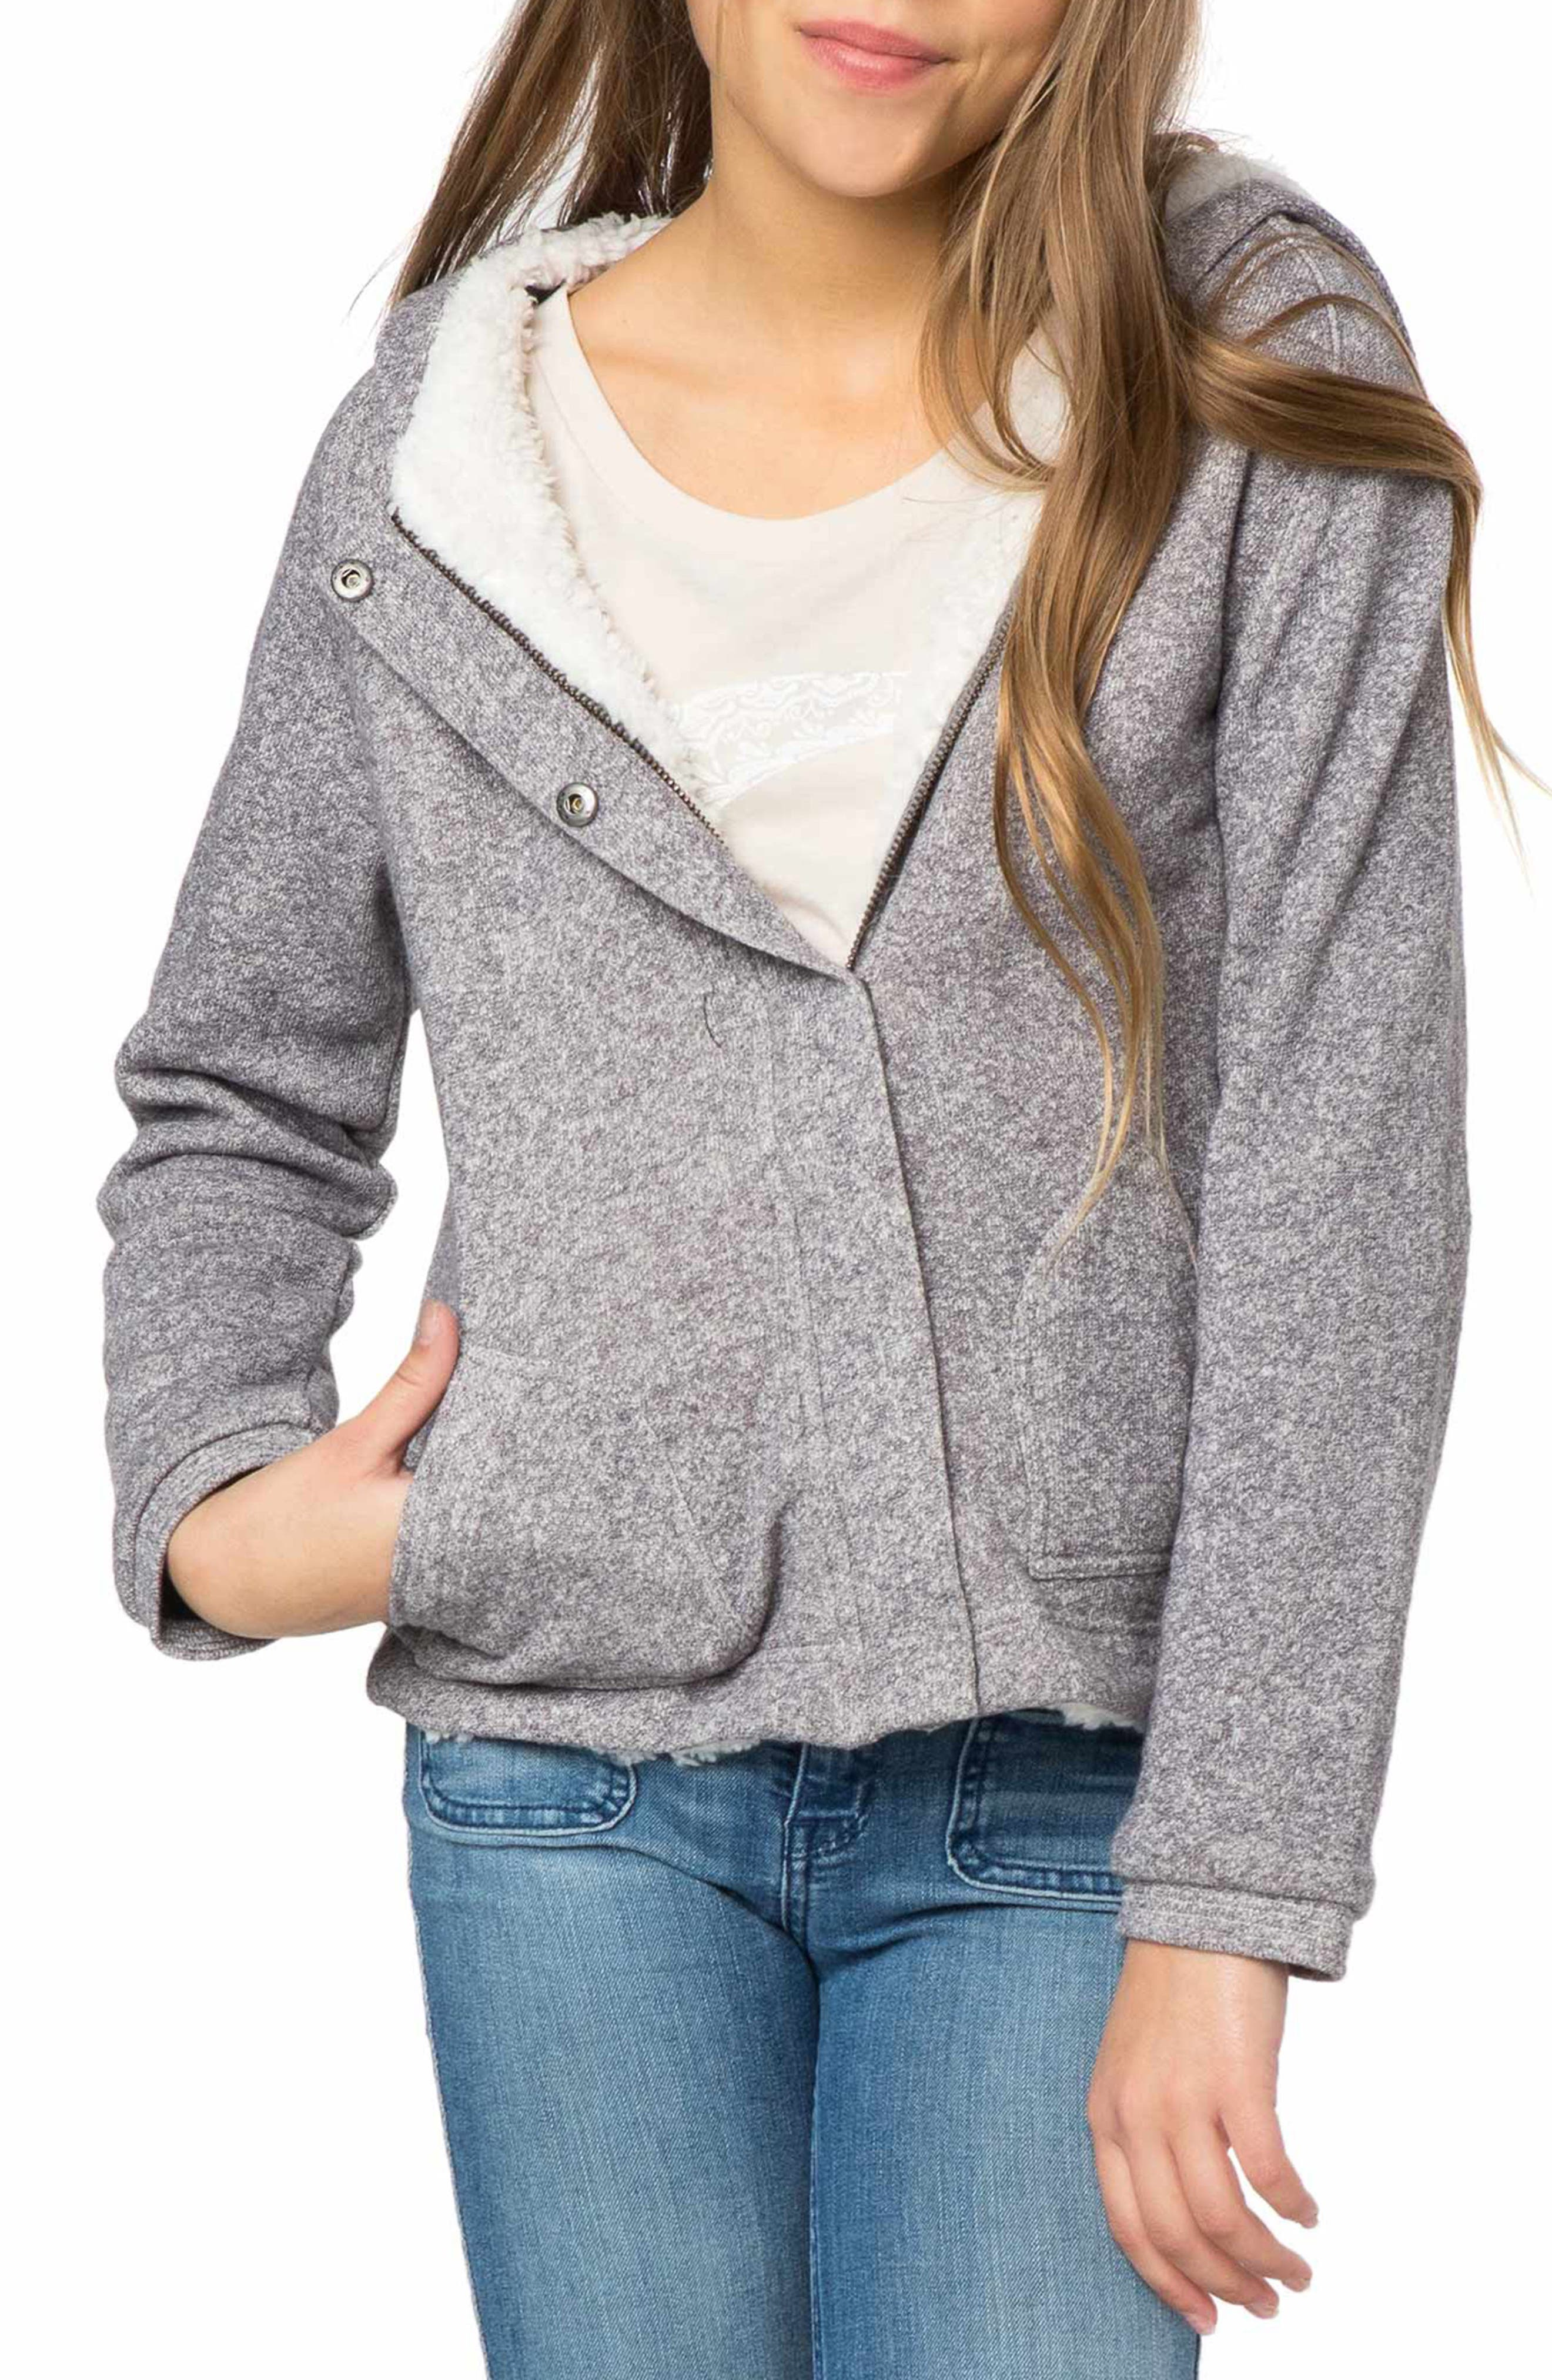 Alternate Image 1 Selected - O'Neill Lorie Faux Fur Lined Hoodie (Big Girls)